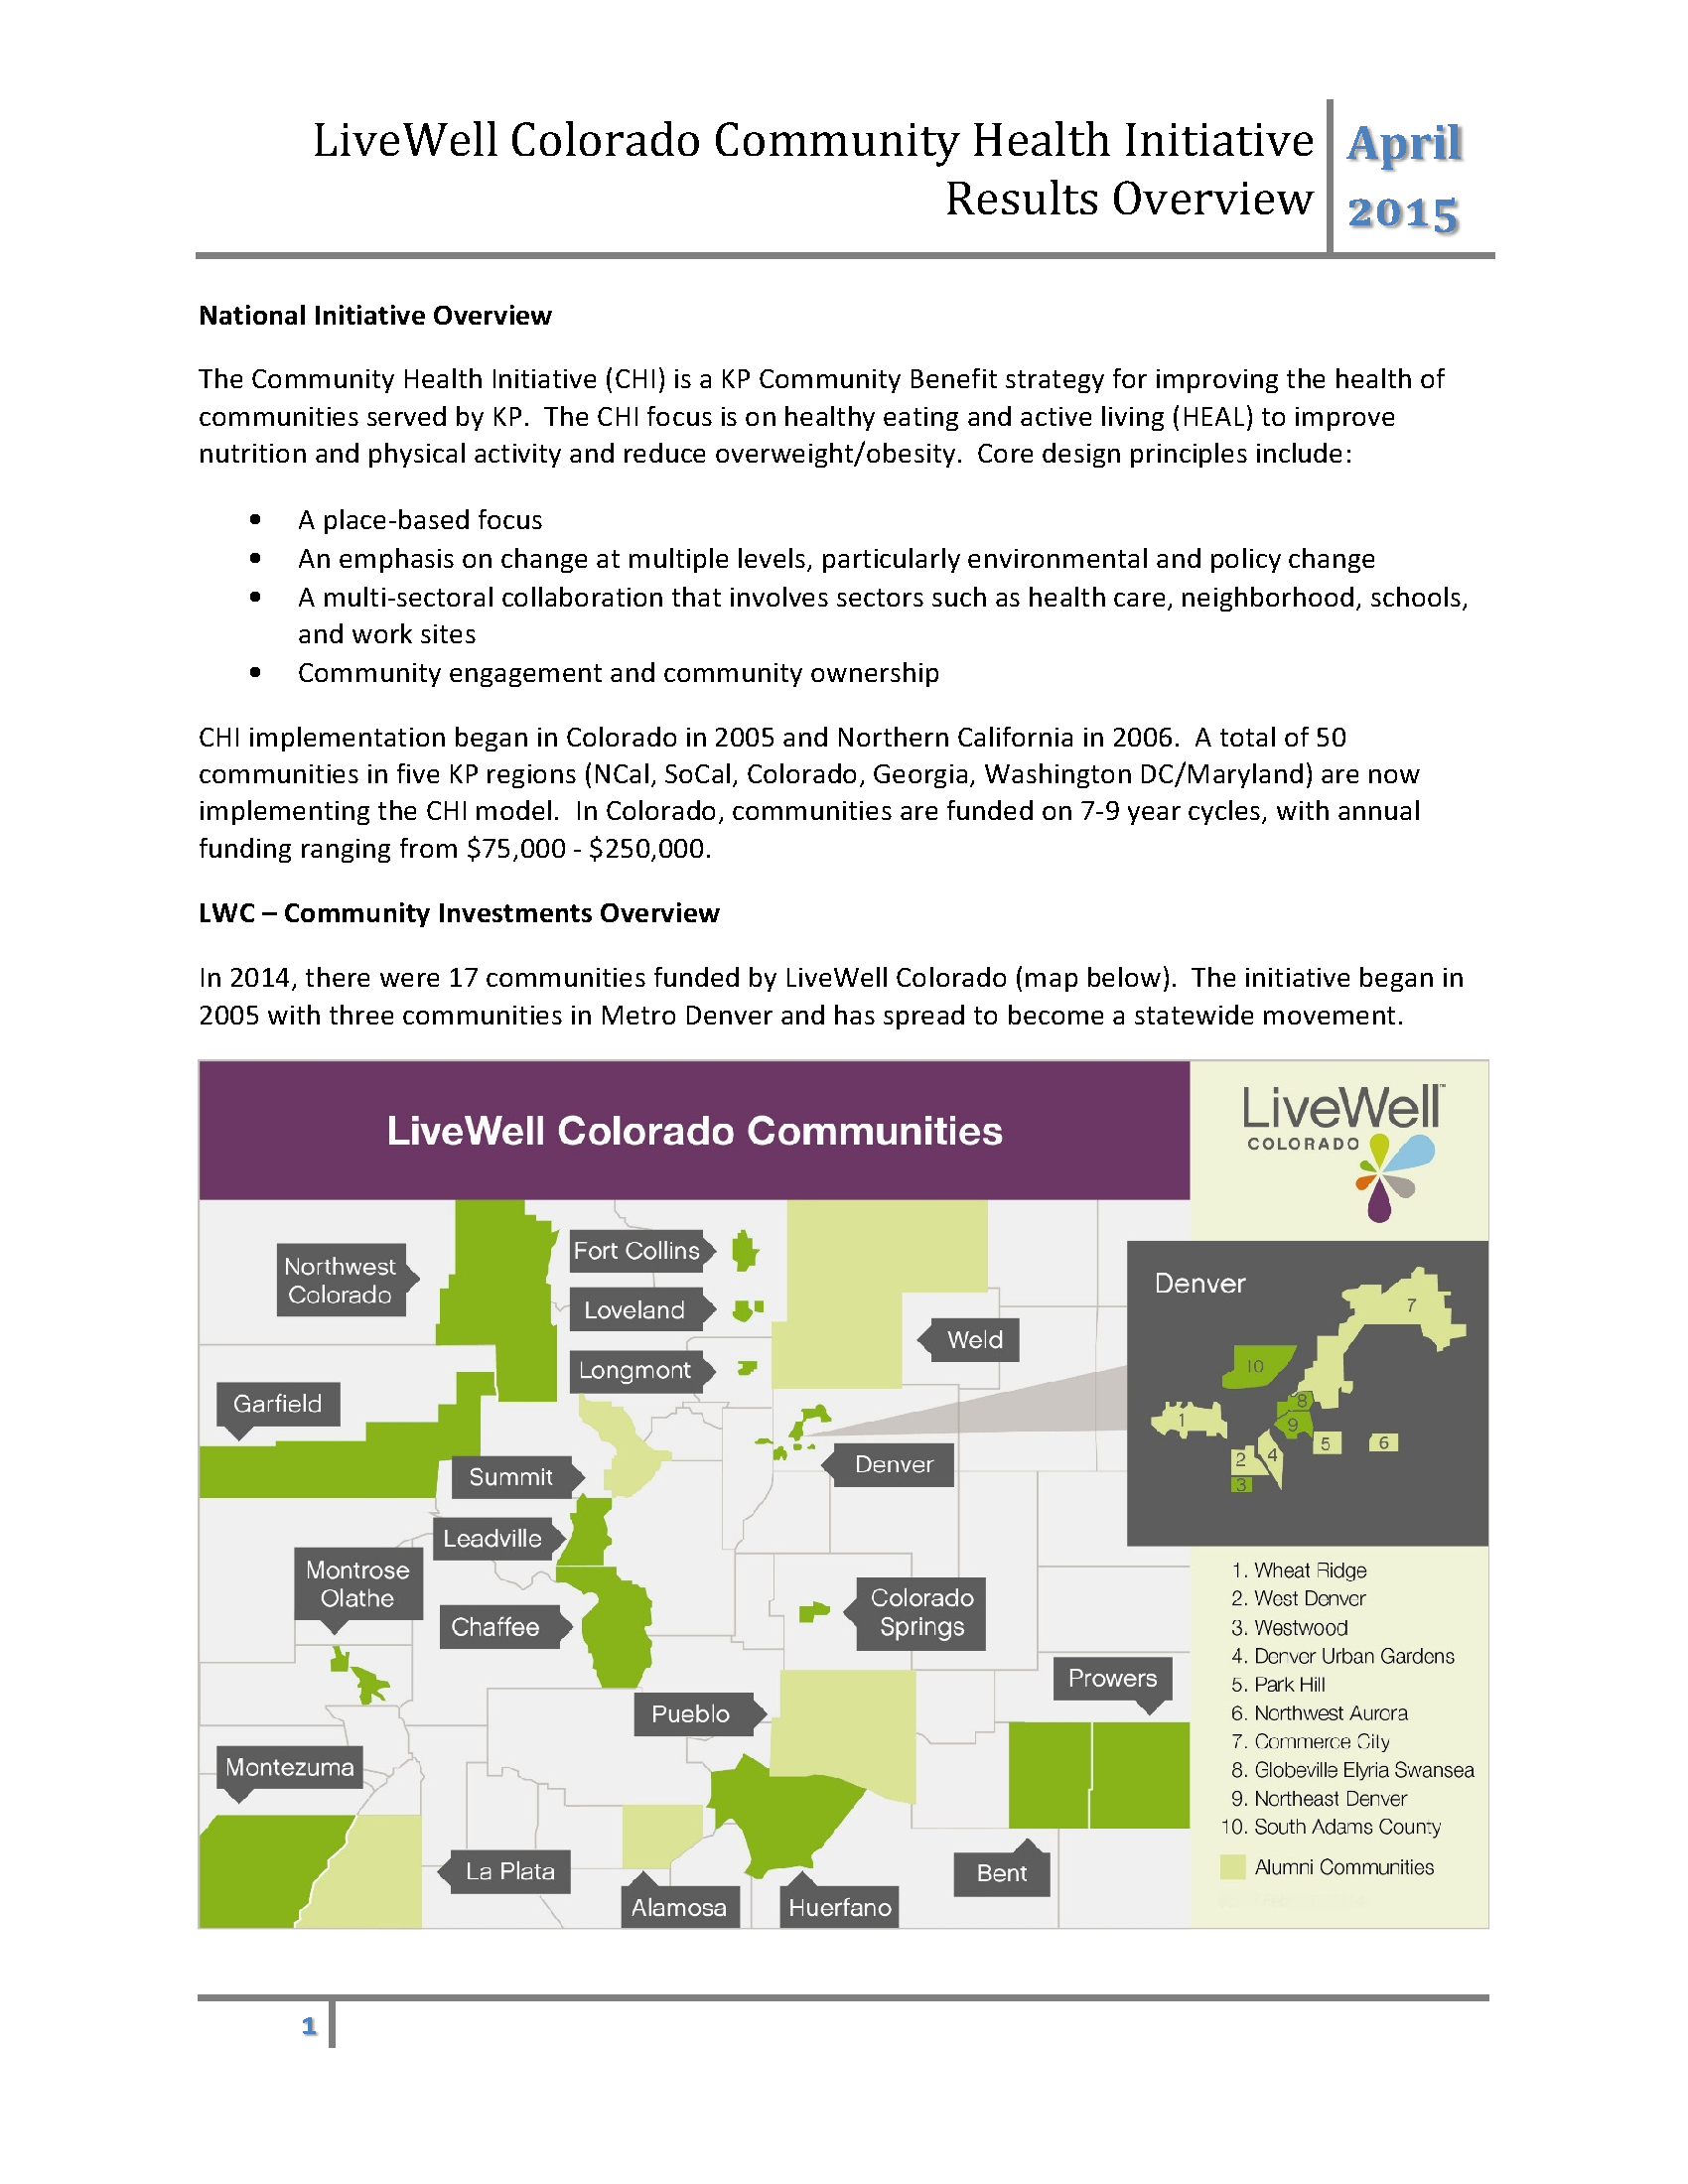 LiveWell Colorado 2015 Results Overview